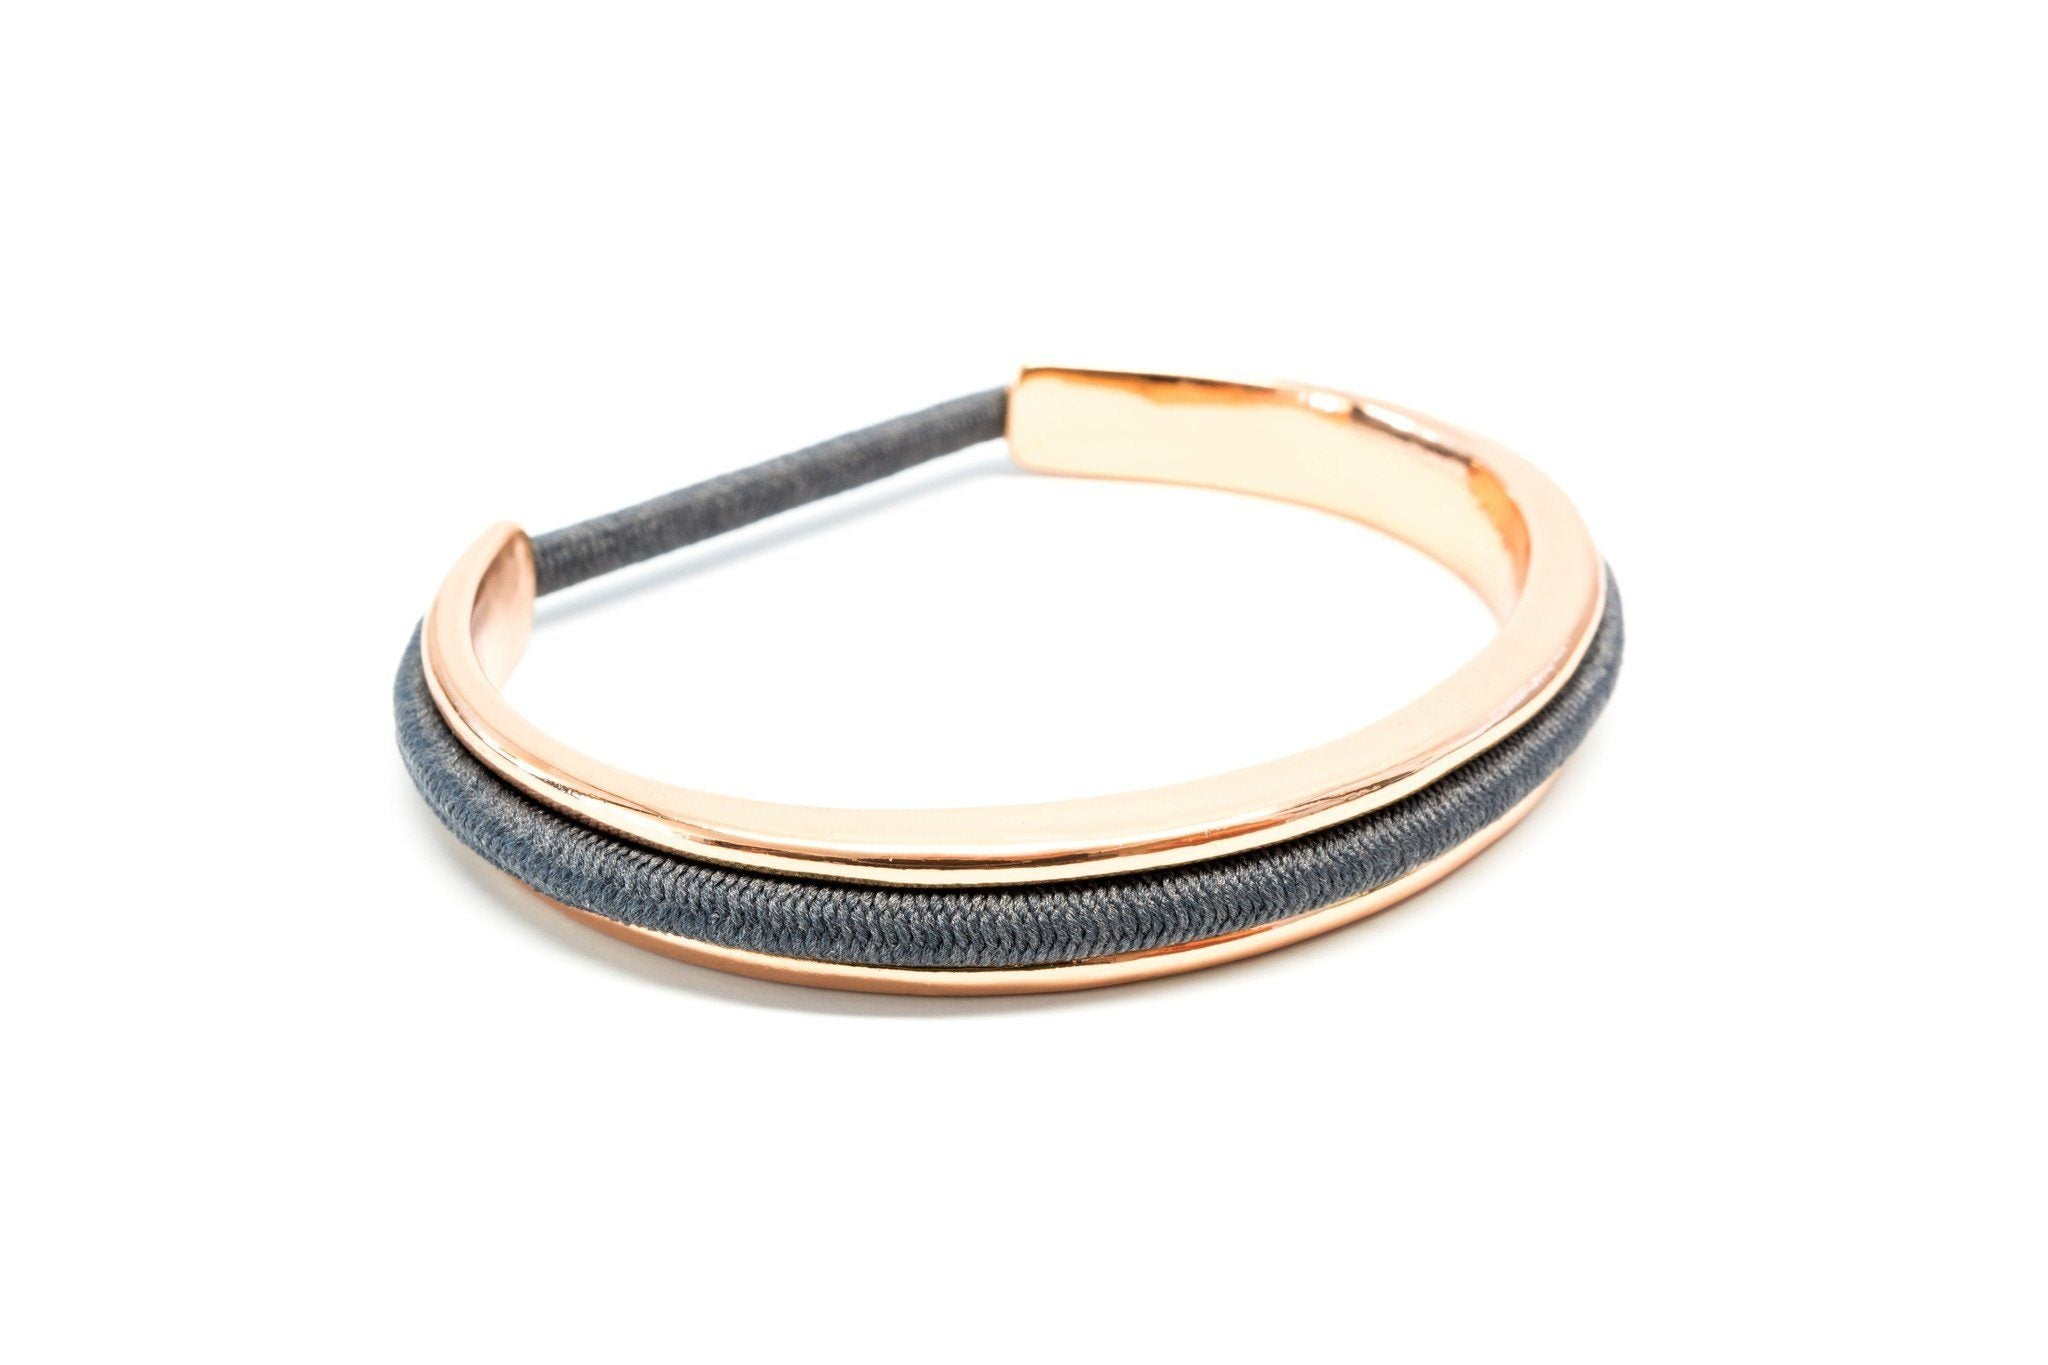 The Original Hair Tie Bracelet Holder By Maria Shireen